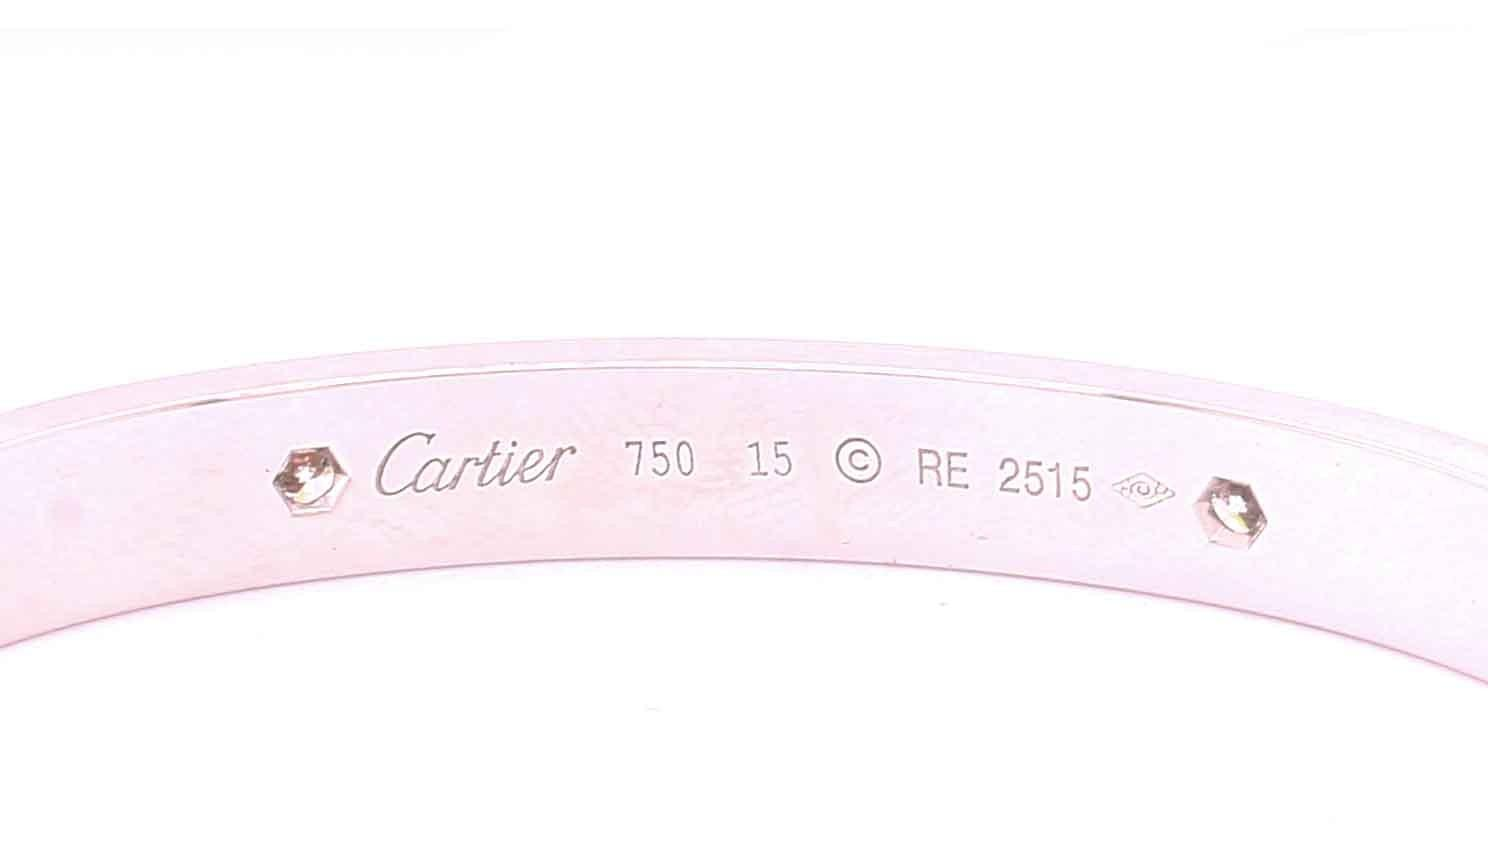 An authentic 18ct white gold 4 diamond Cartier Love bracelet / bangle with original screw, box and - Image 3 of 4